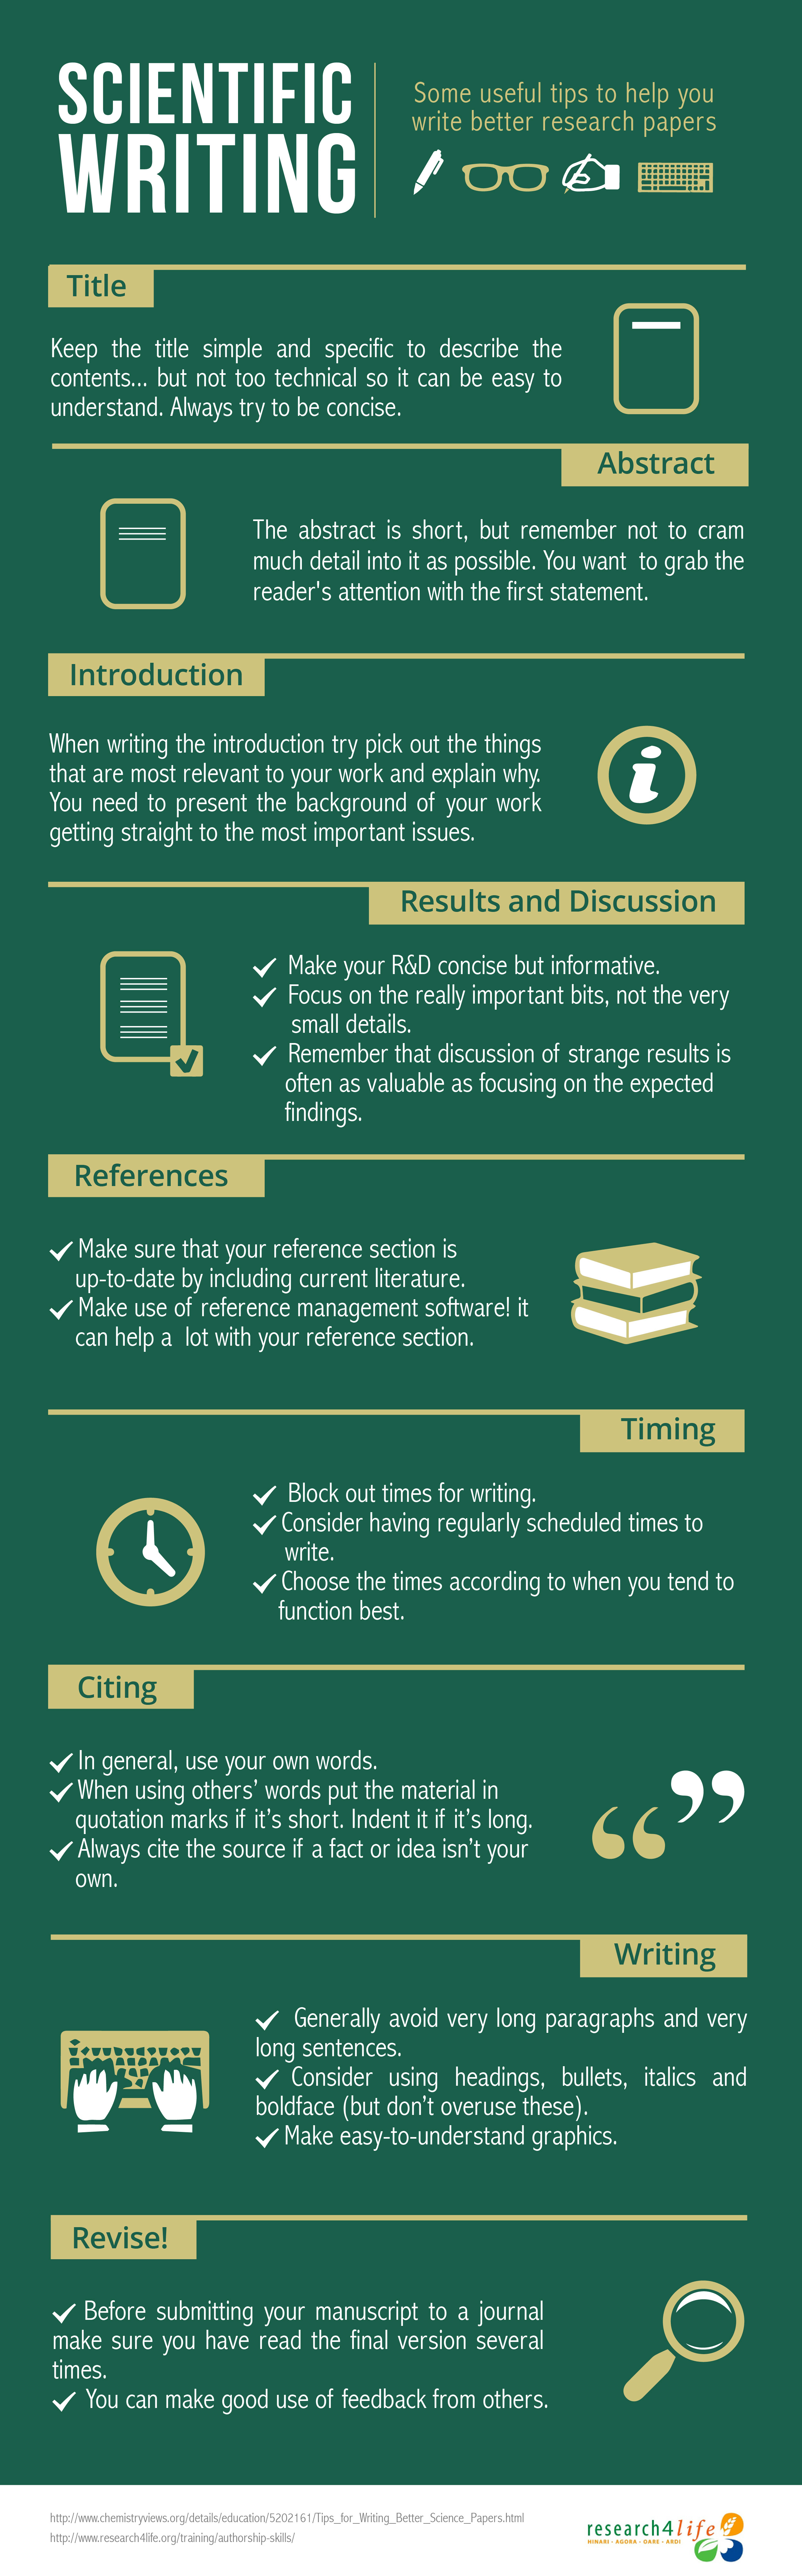 018 Scientific Writing Researchs Online Singular Research Papers Find Free On Food Ordering System Grocery Shopping In India Full